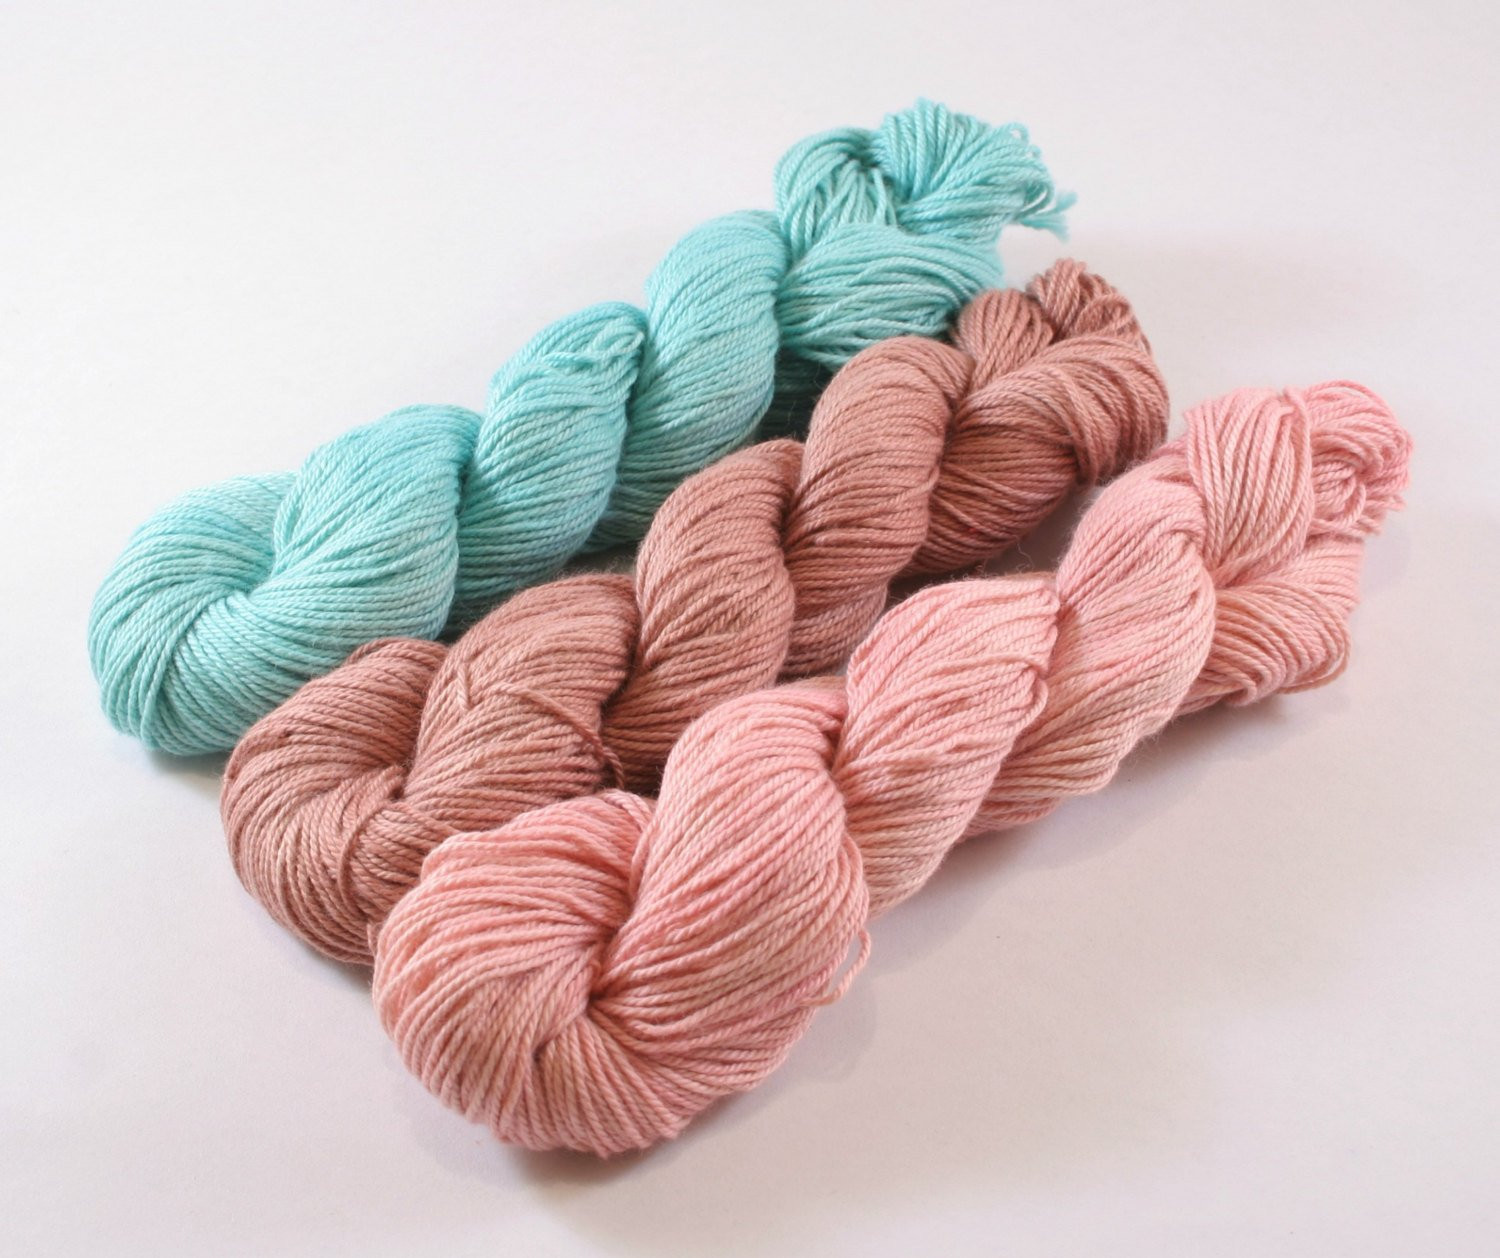 Size 10 Crochet Thread Awesome Hand Dyed Cotton Thread Crochet Size 10 Pastel by Eadenyarns Of Luxury 49 Models Size 10 Crochet Thread